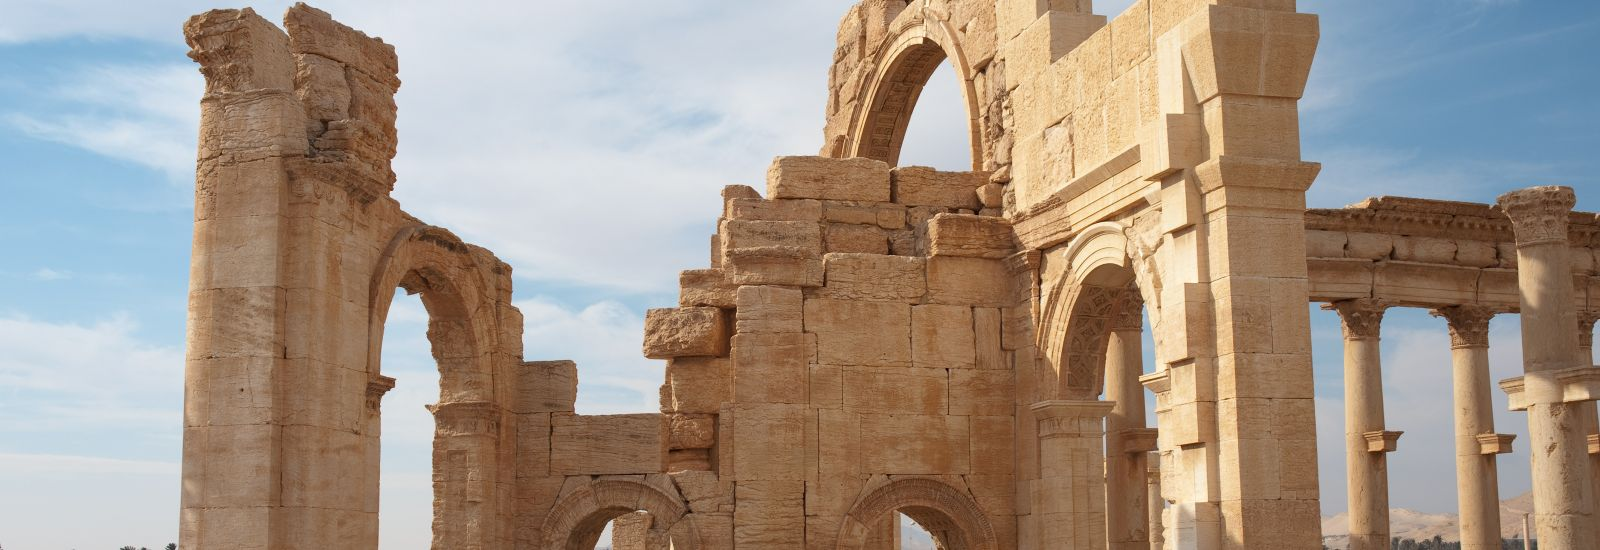 Side view of Palmyra's Monumental Arch